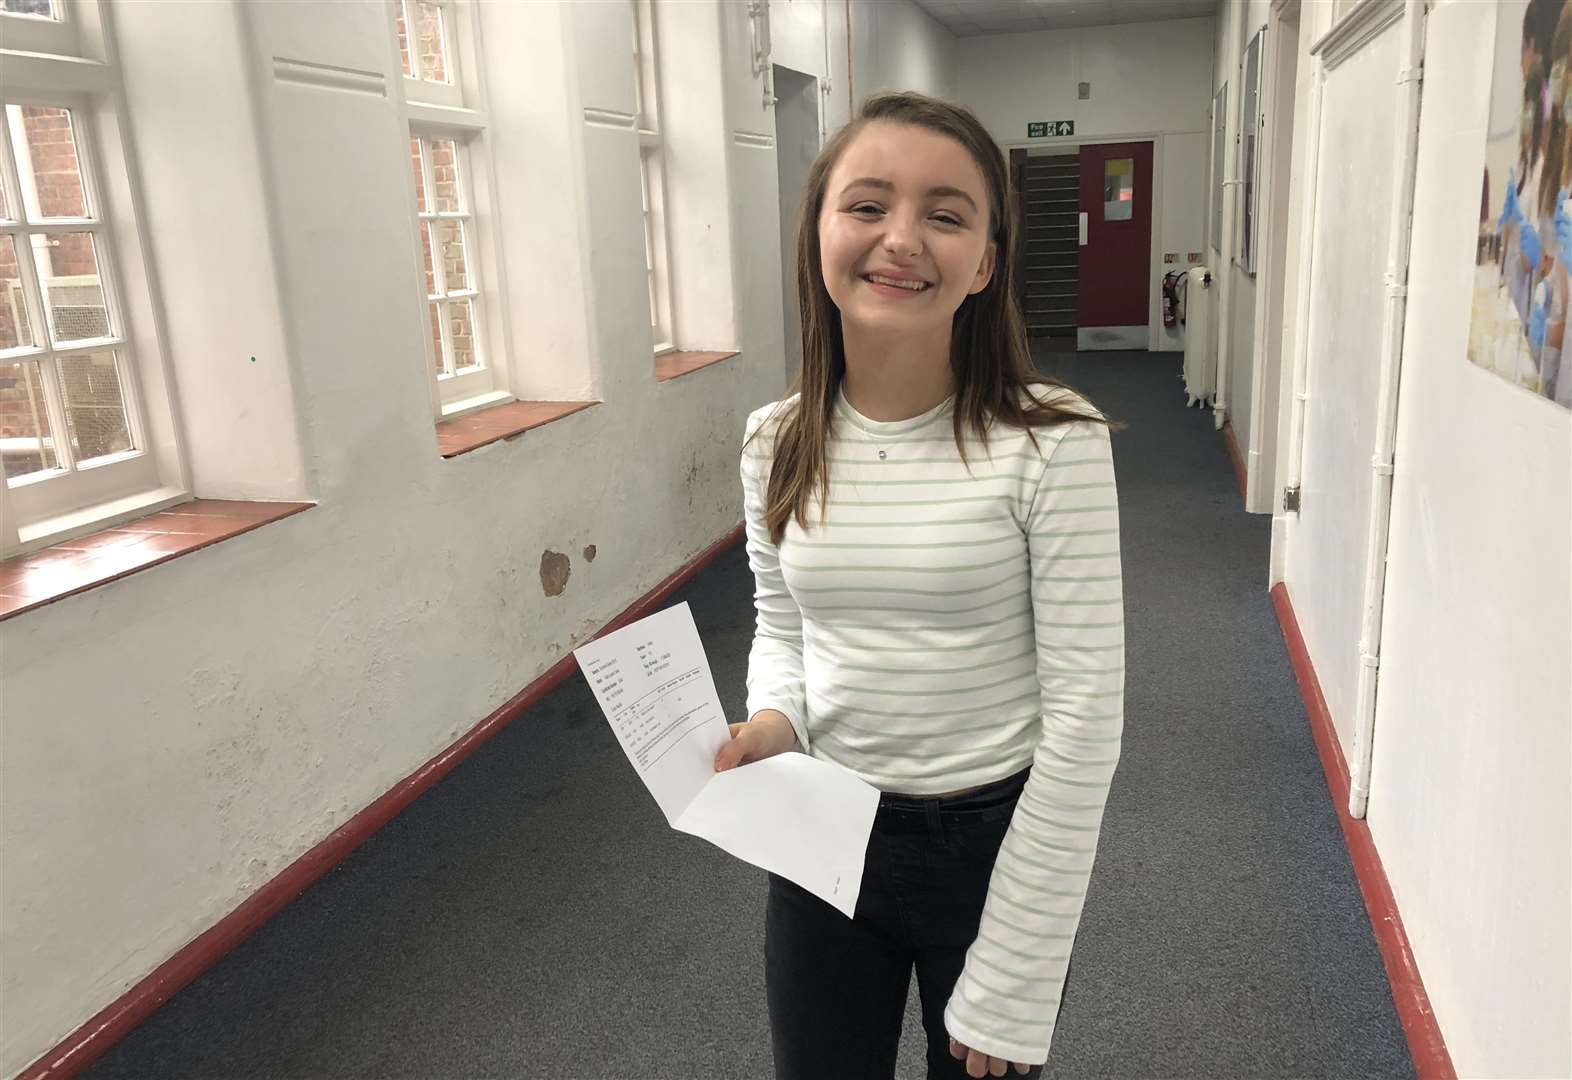 A-LEVELS 2018: KES Academy celebrates improved pass rates